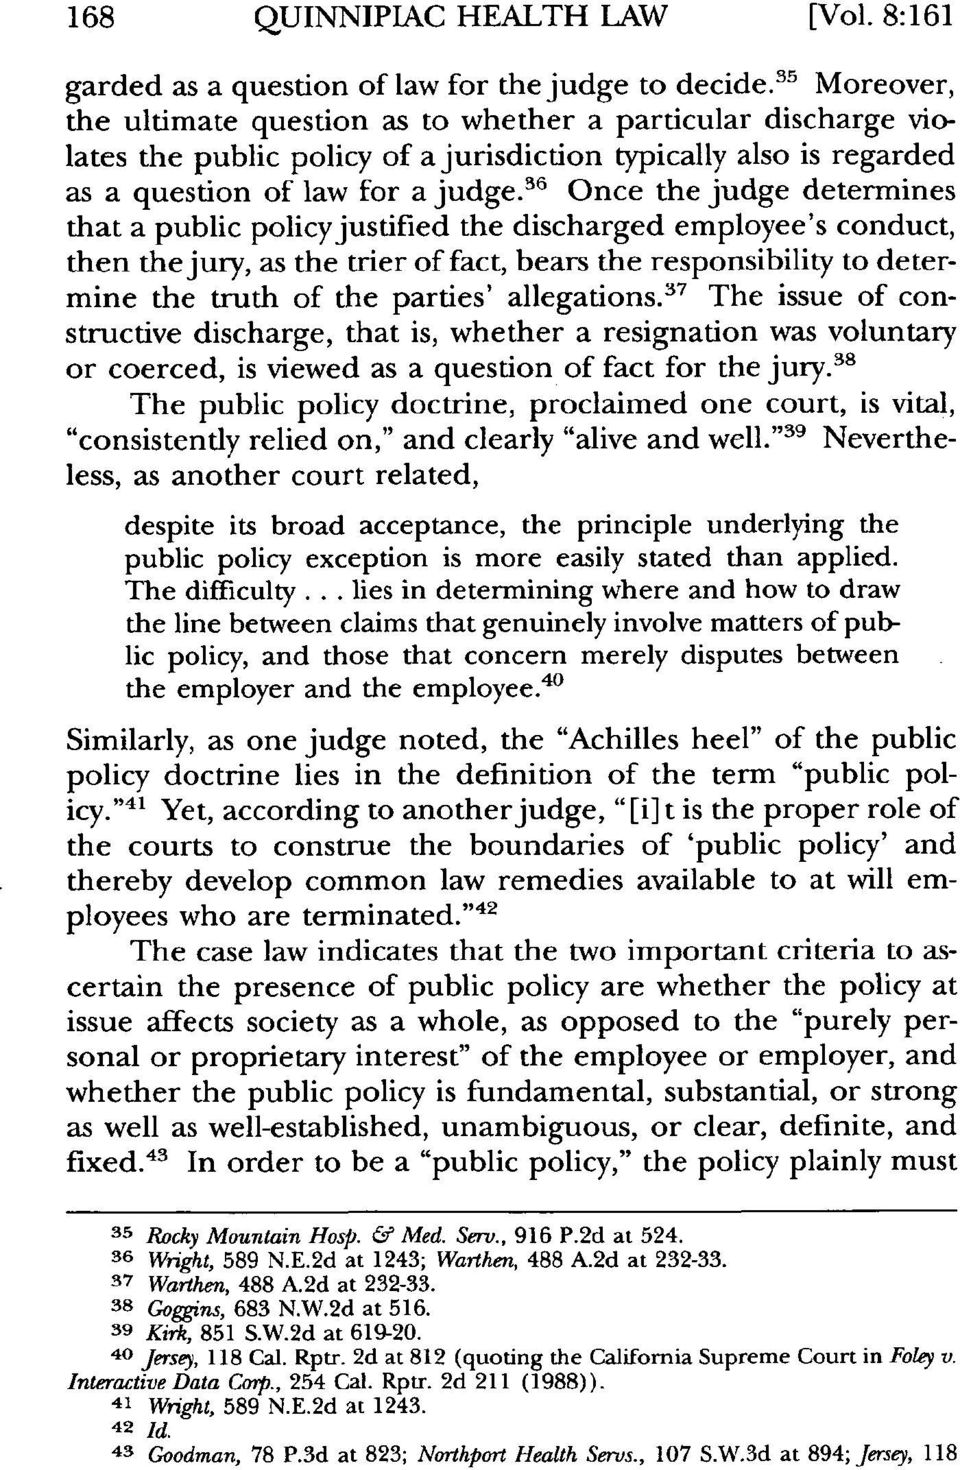 6 Once the judge determines that a public policy justified the discharged employee's conduct, then the jury, as the trier of fact, bears the responsibility to determine the truth of the parties'